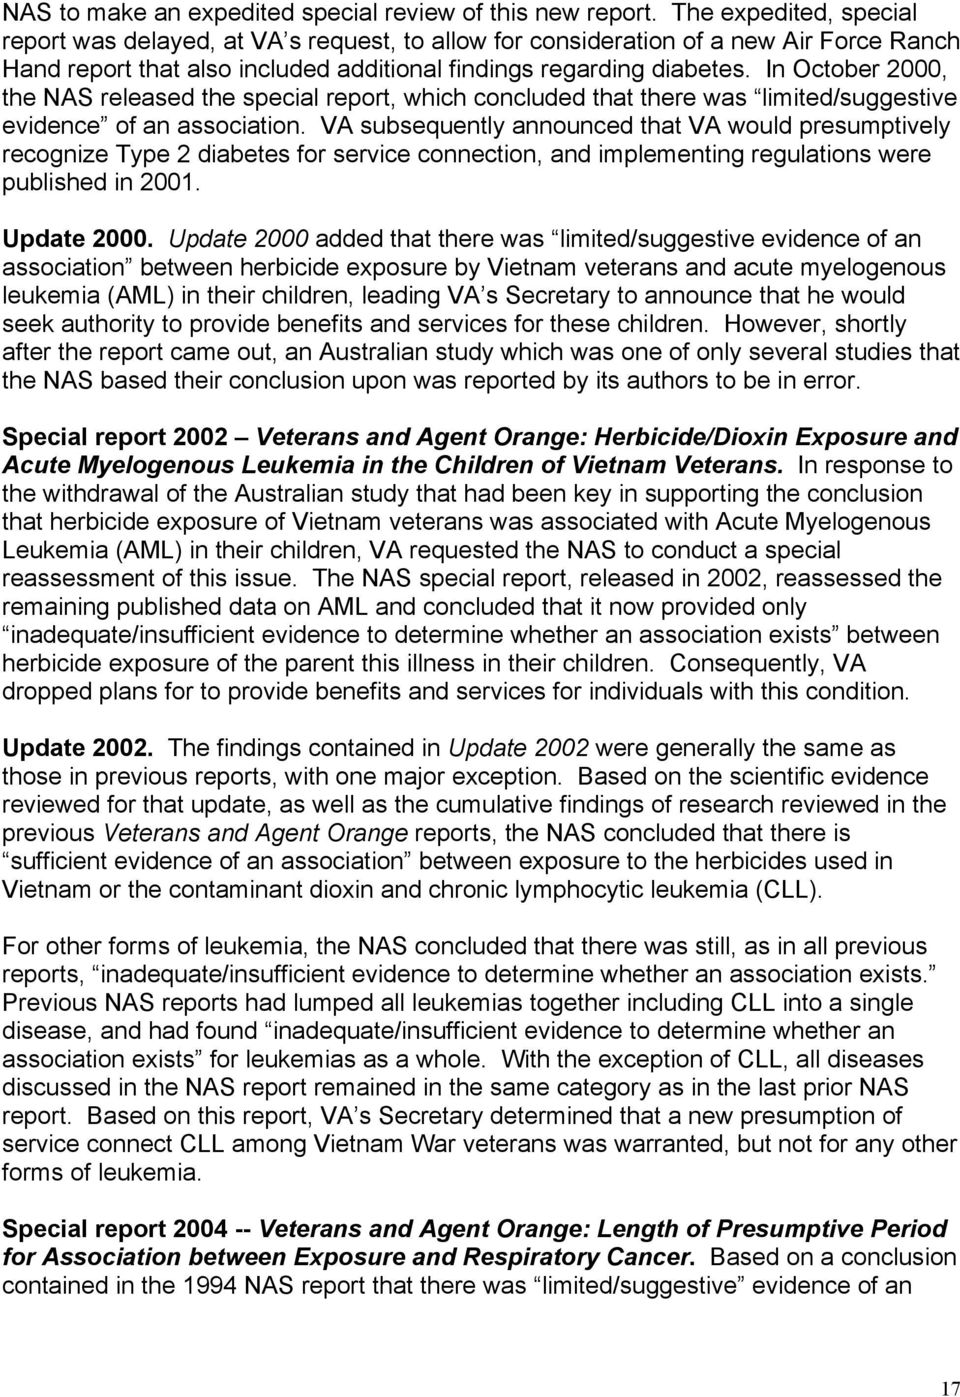 In October 2000, the NAS released the special report, which concluded that there was limited/suggestive evidence of an association.